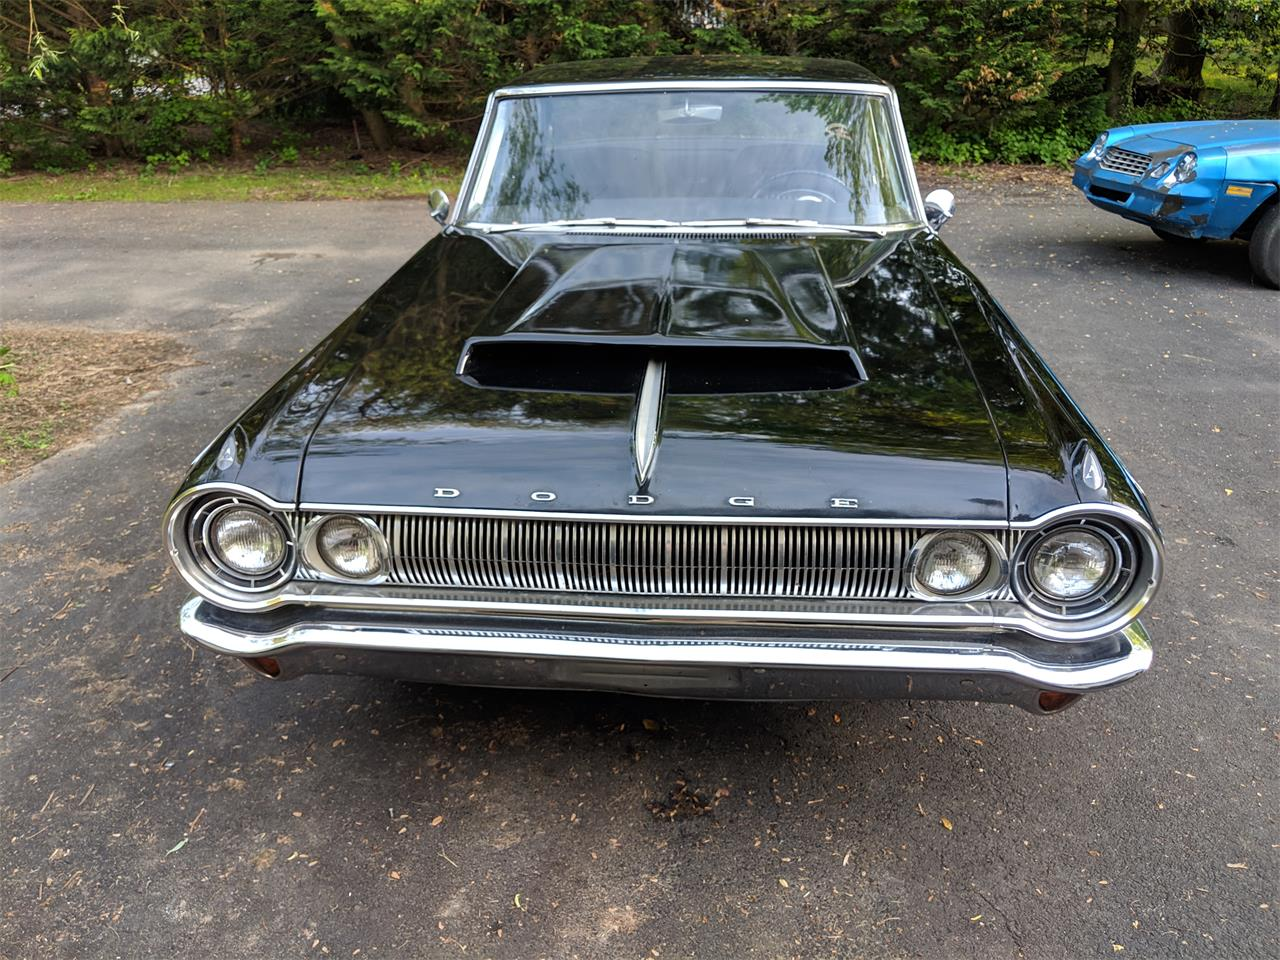 Large Picture of 1964 Polara - $23,000.00 Offered by a Private Seller - Q0ZT